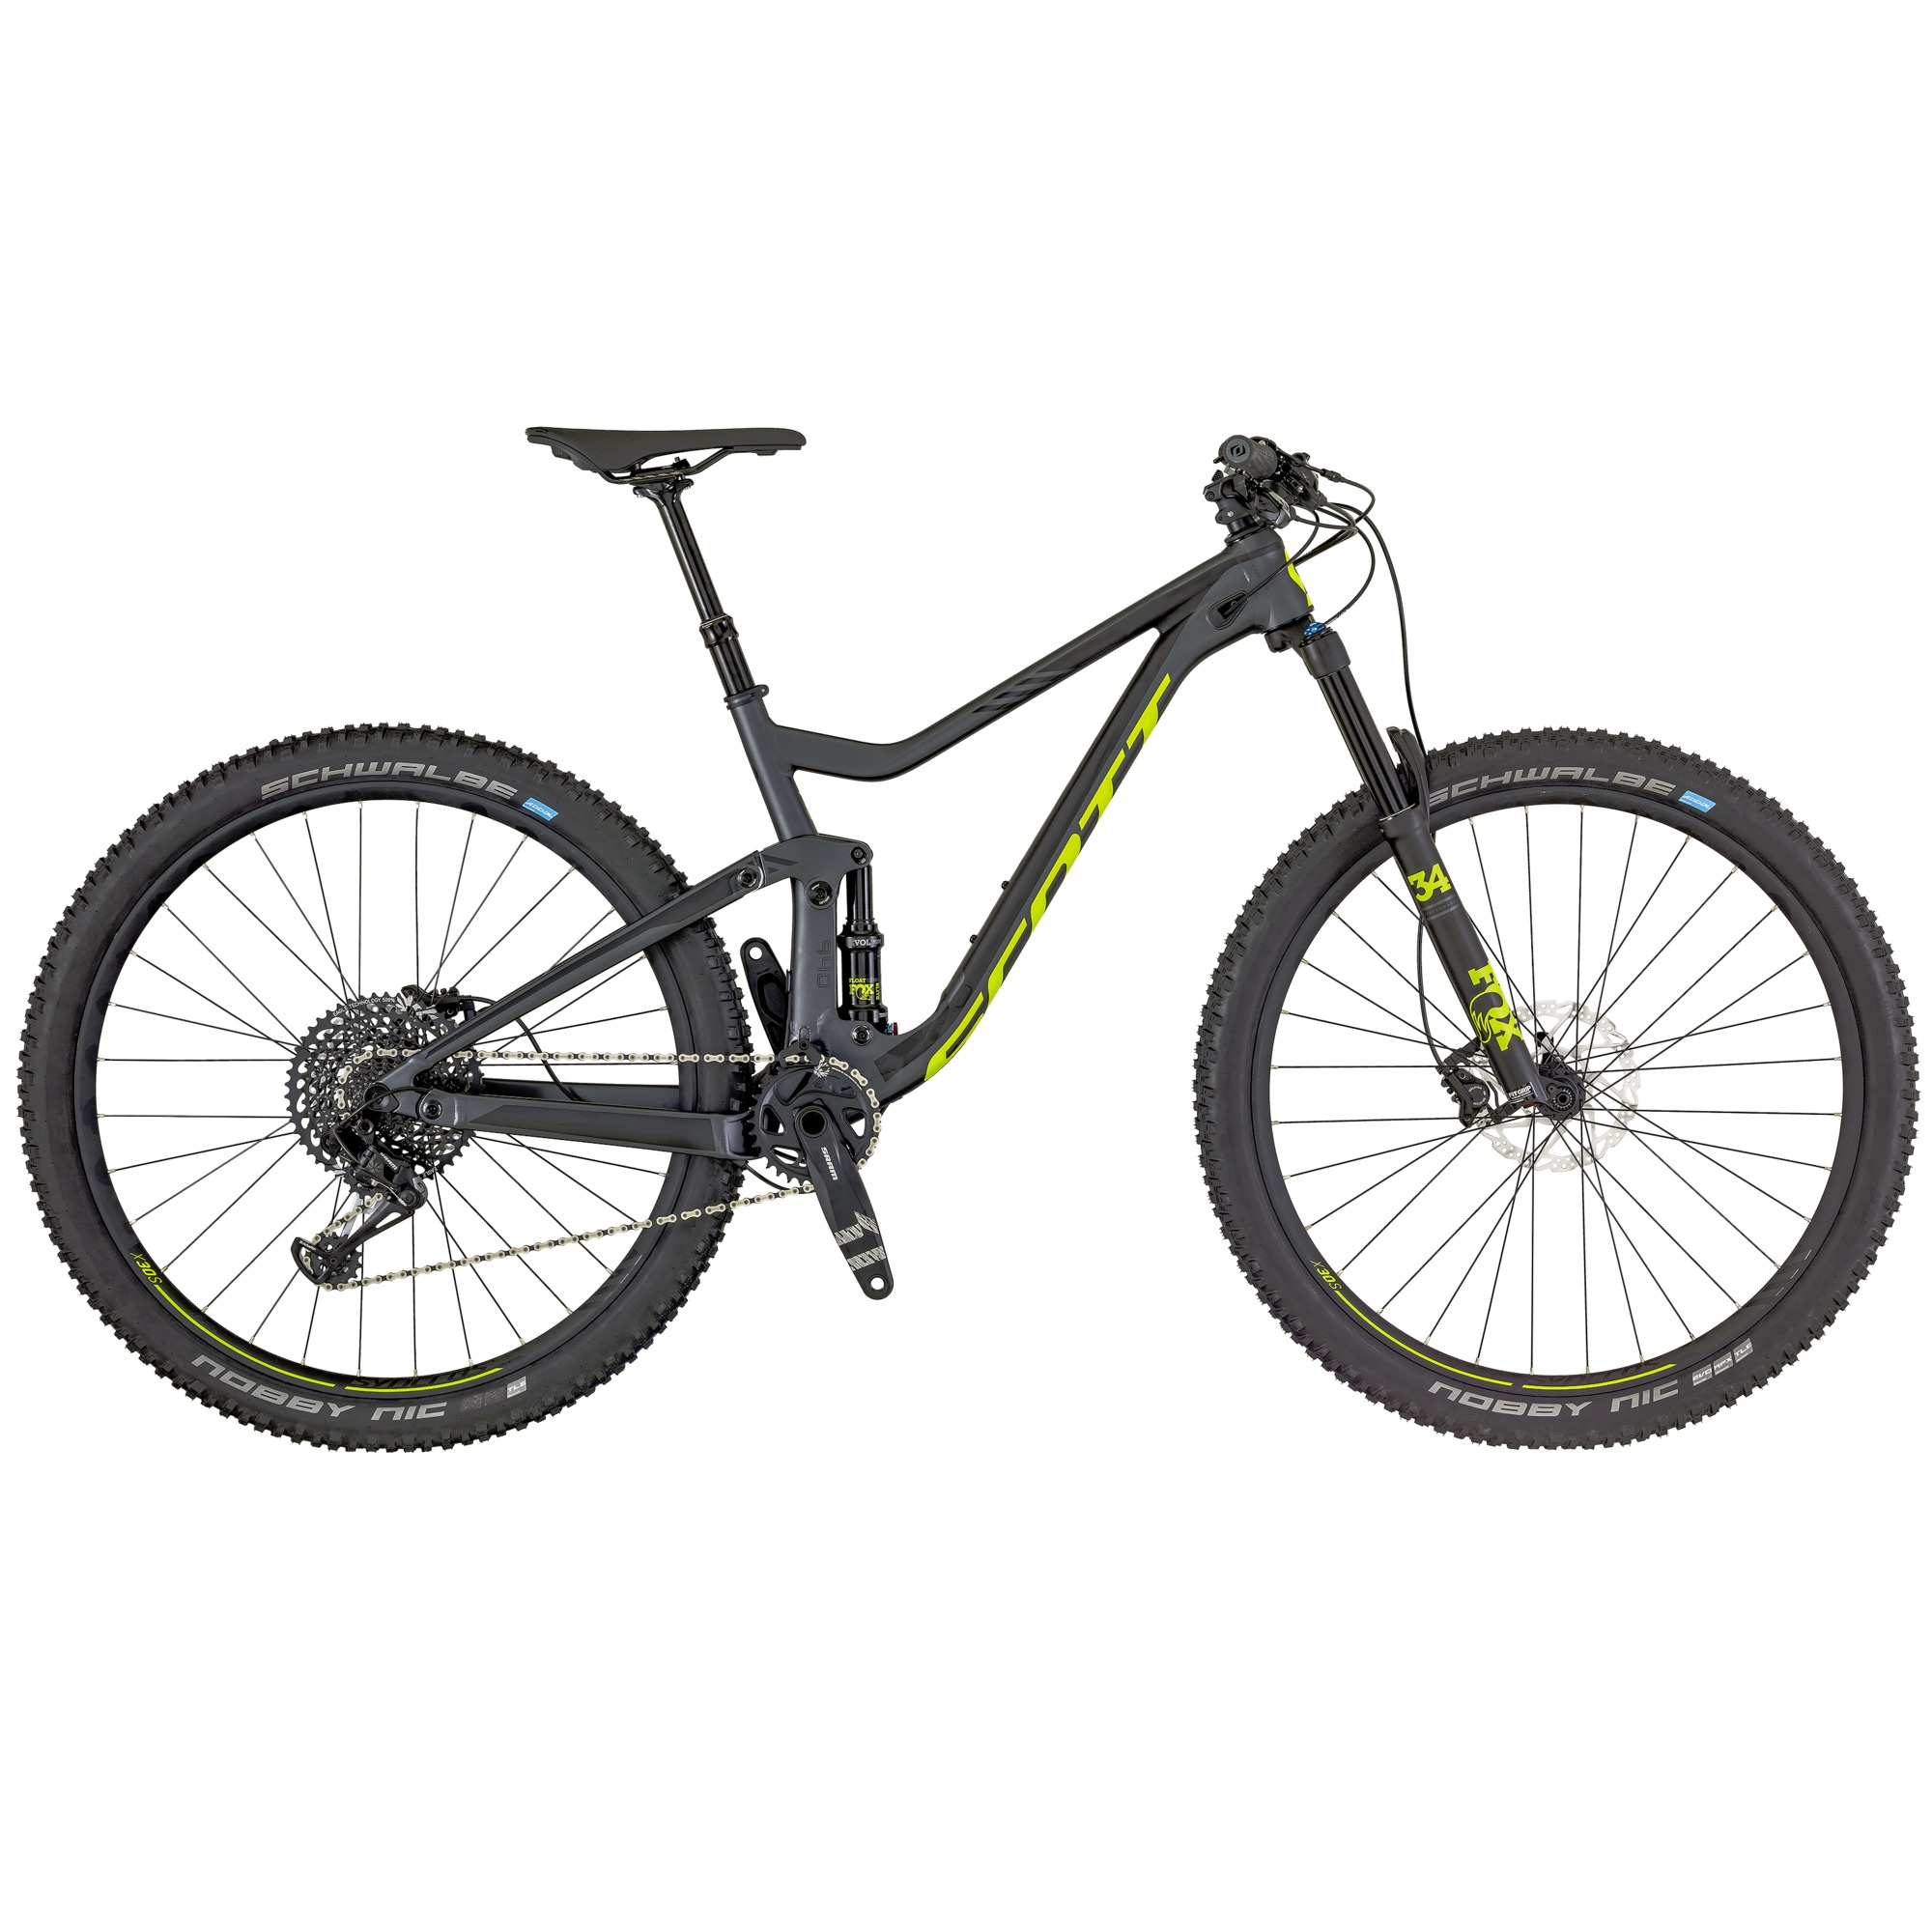 SCOTT Genius 940 Bike L - Zweirad Homann